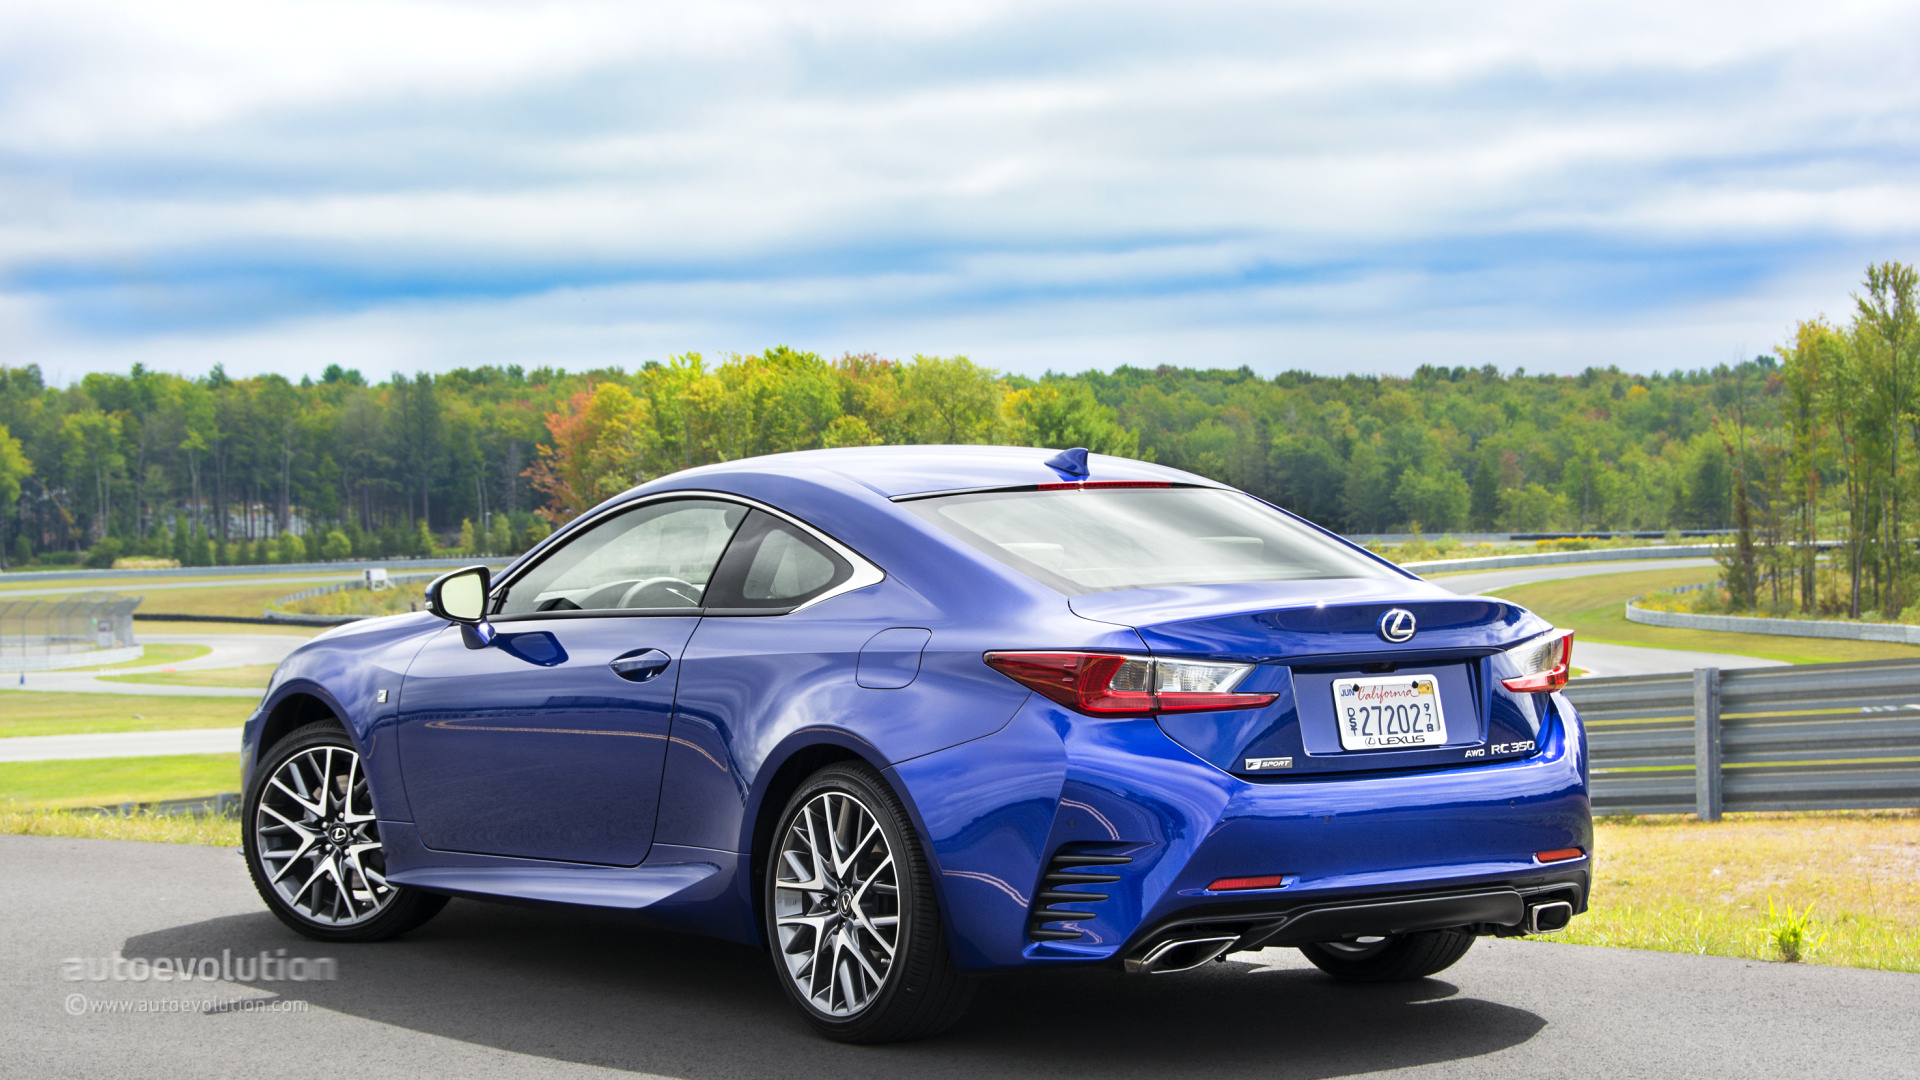 2015 lexus rc rc f tested autoevolution. Black Bedroom Furniture Sets. Home Design Ideas